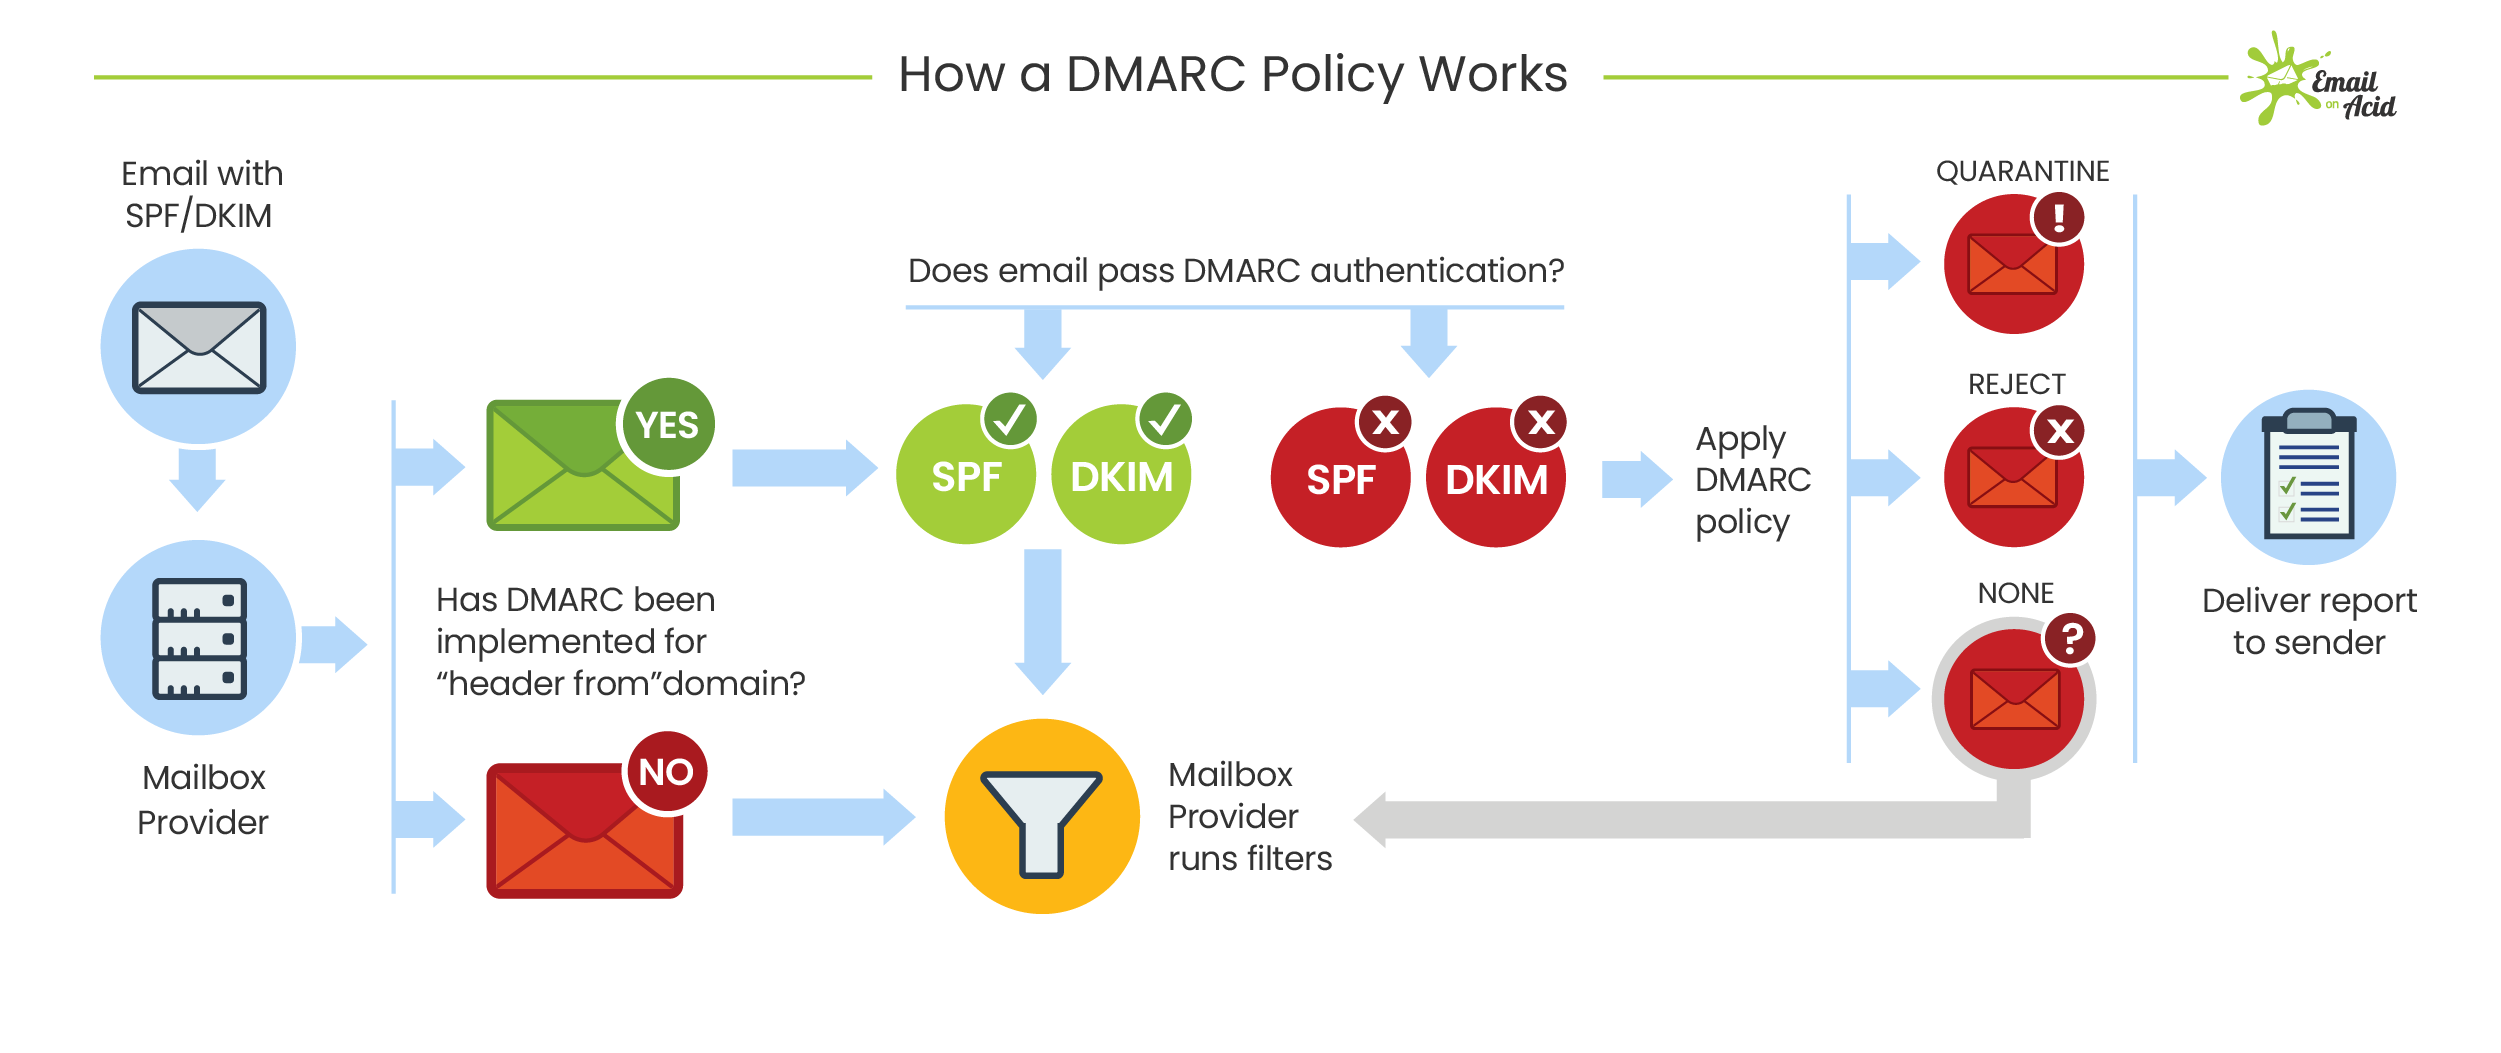 Diagram illustrating a DMARC policy for email